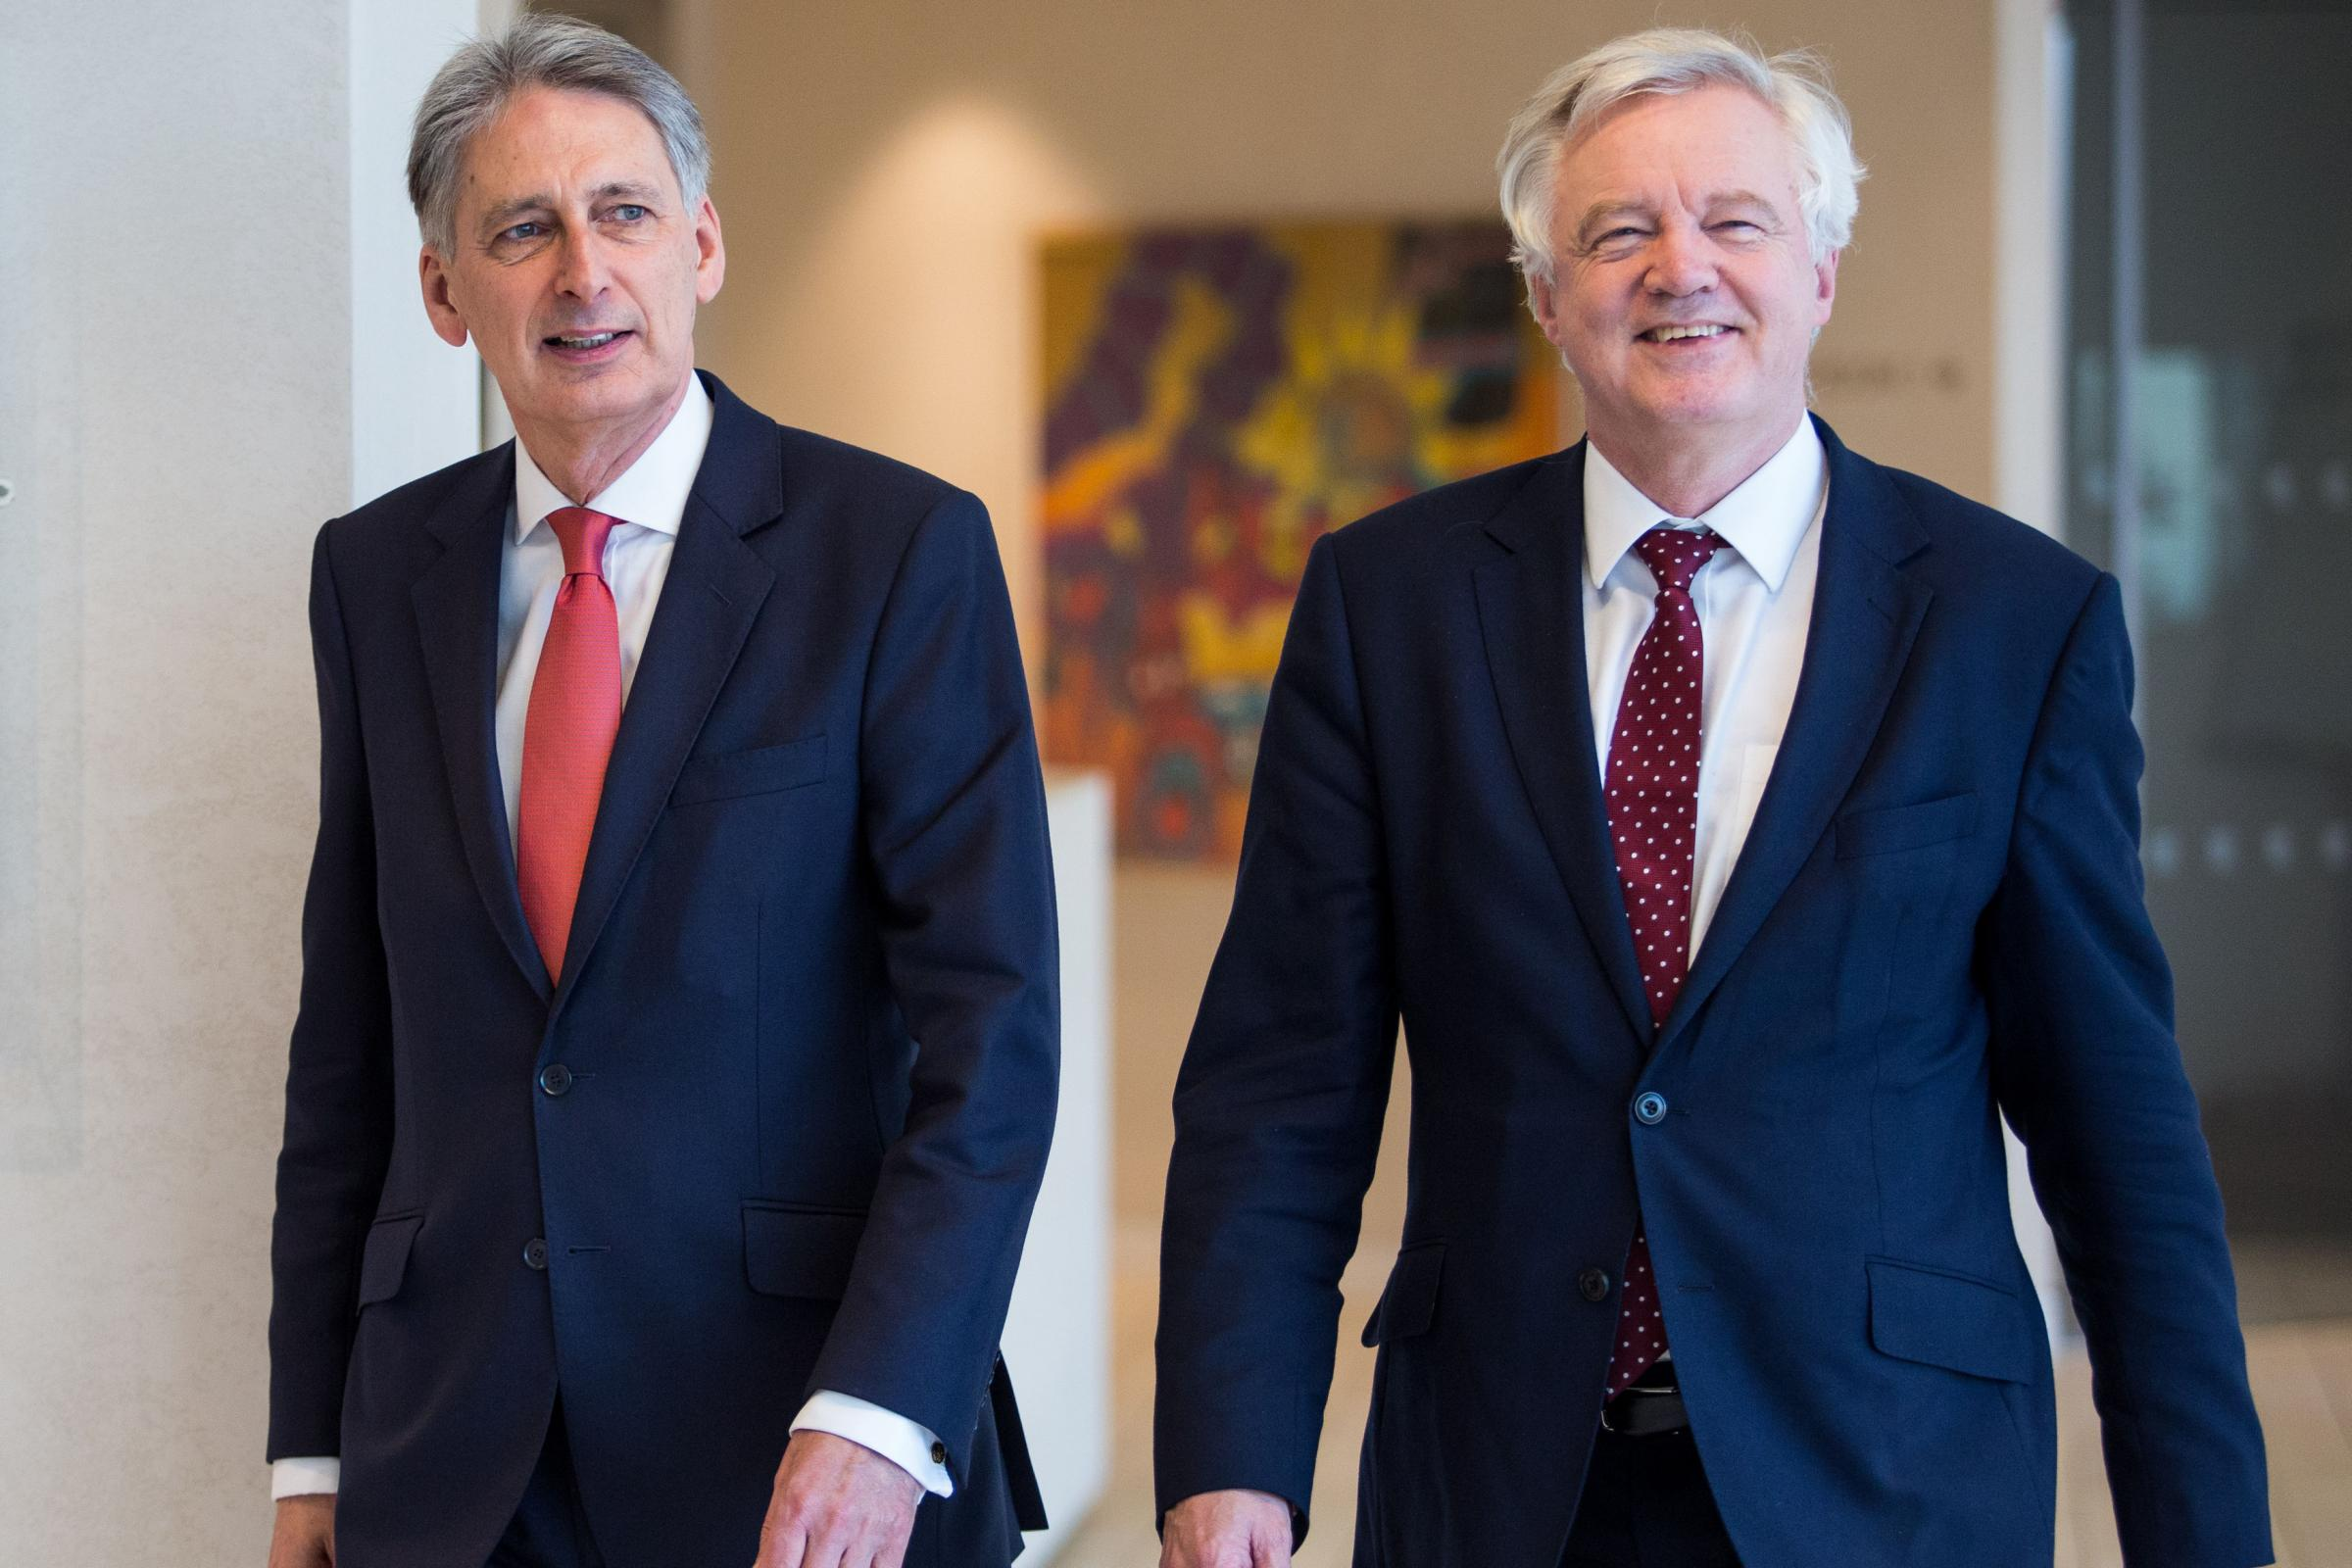 Two to tango: Hammond and Davis embark on Brexit charm offensive